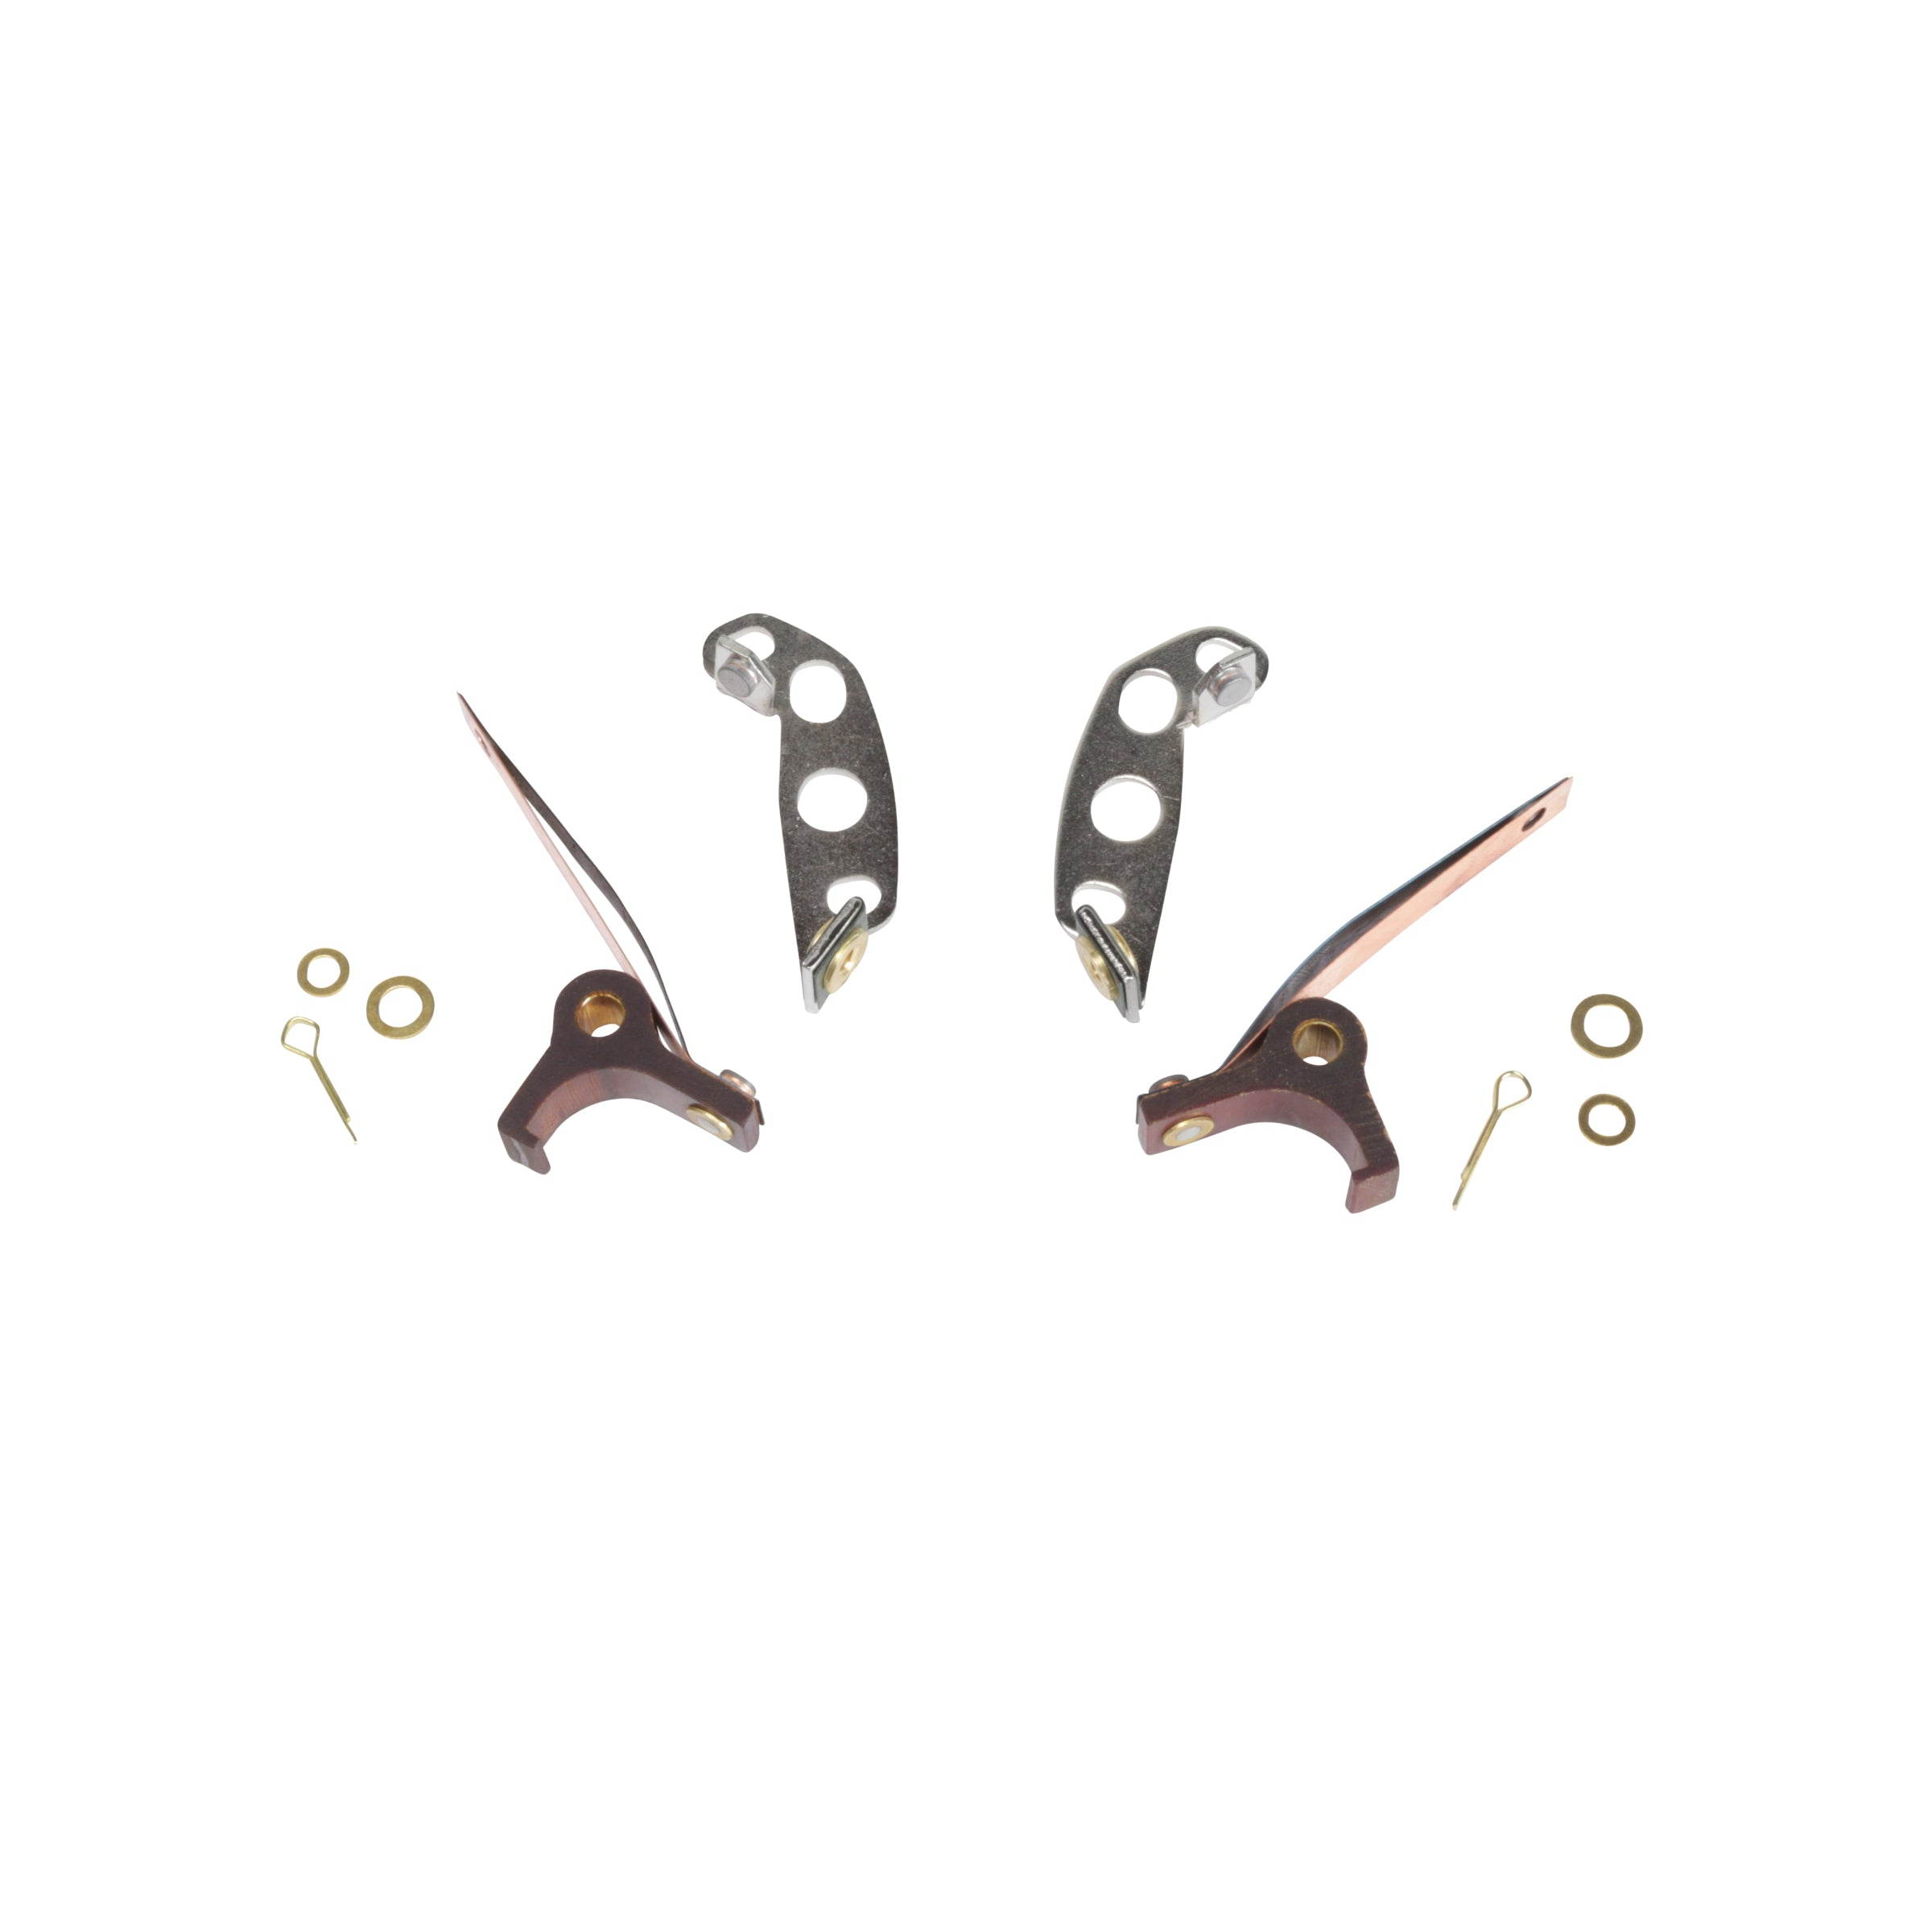 Ignition Point Set • 1937-48 V-8